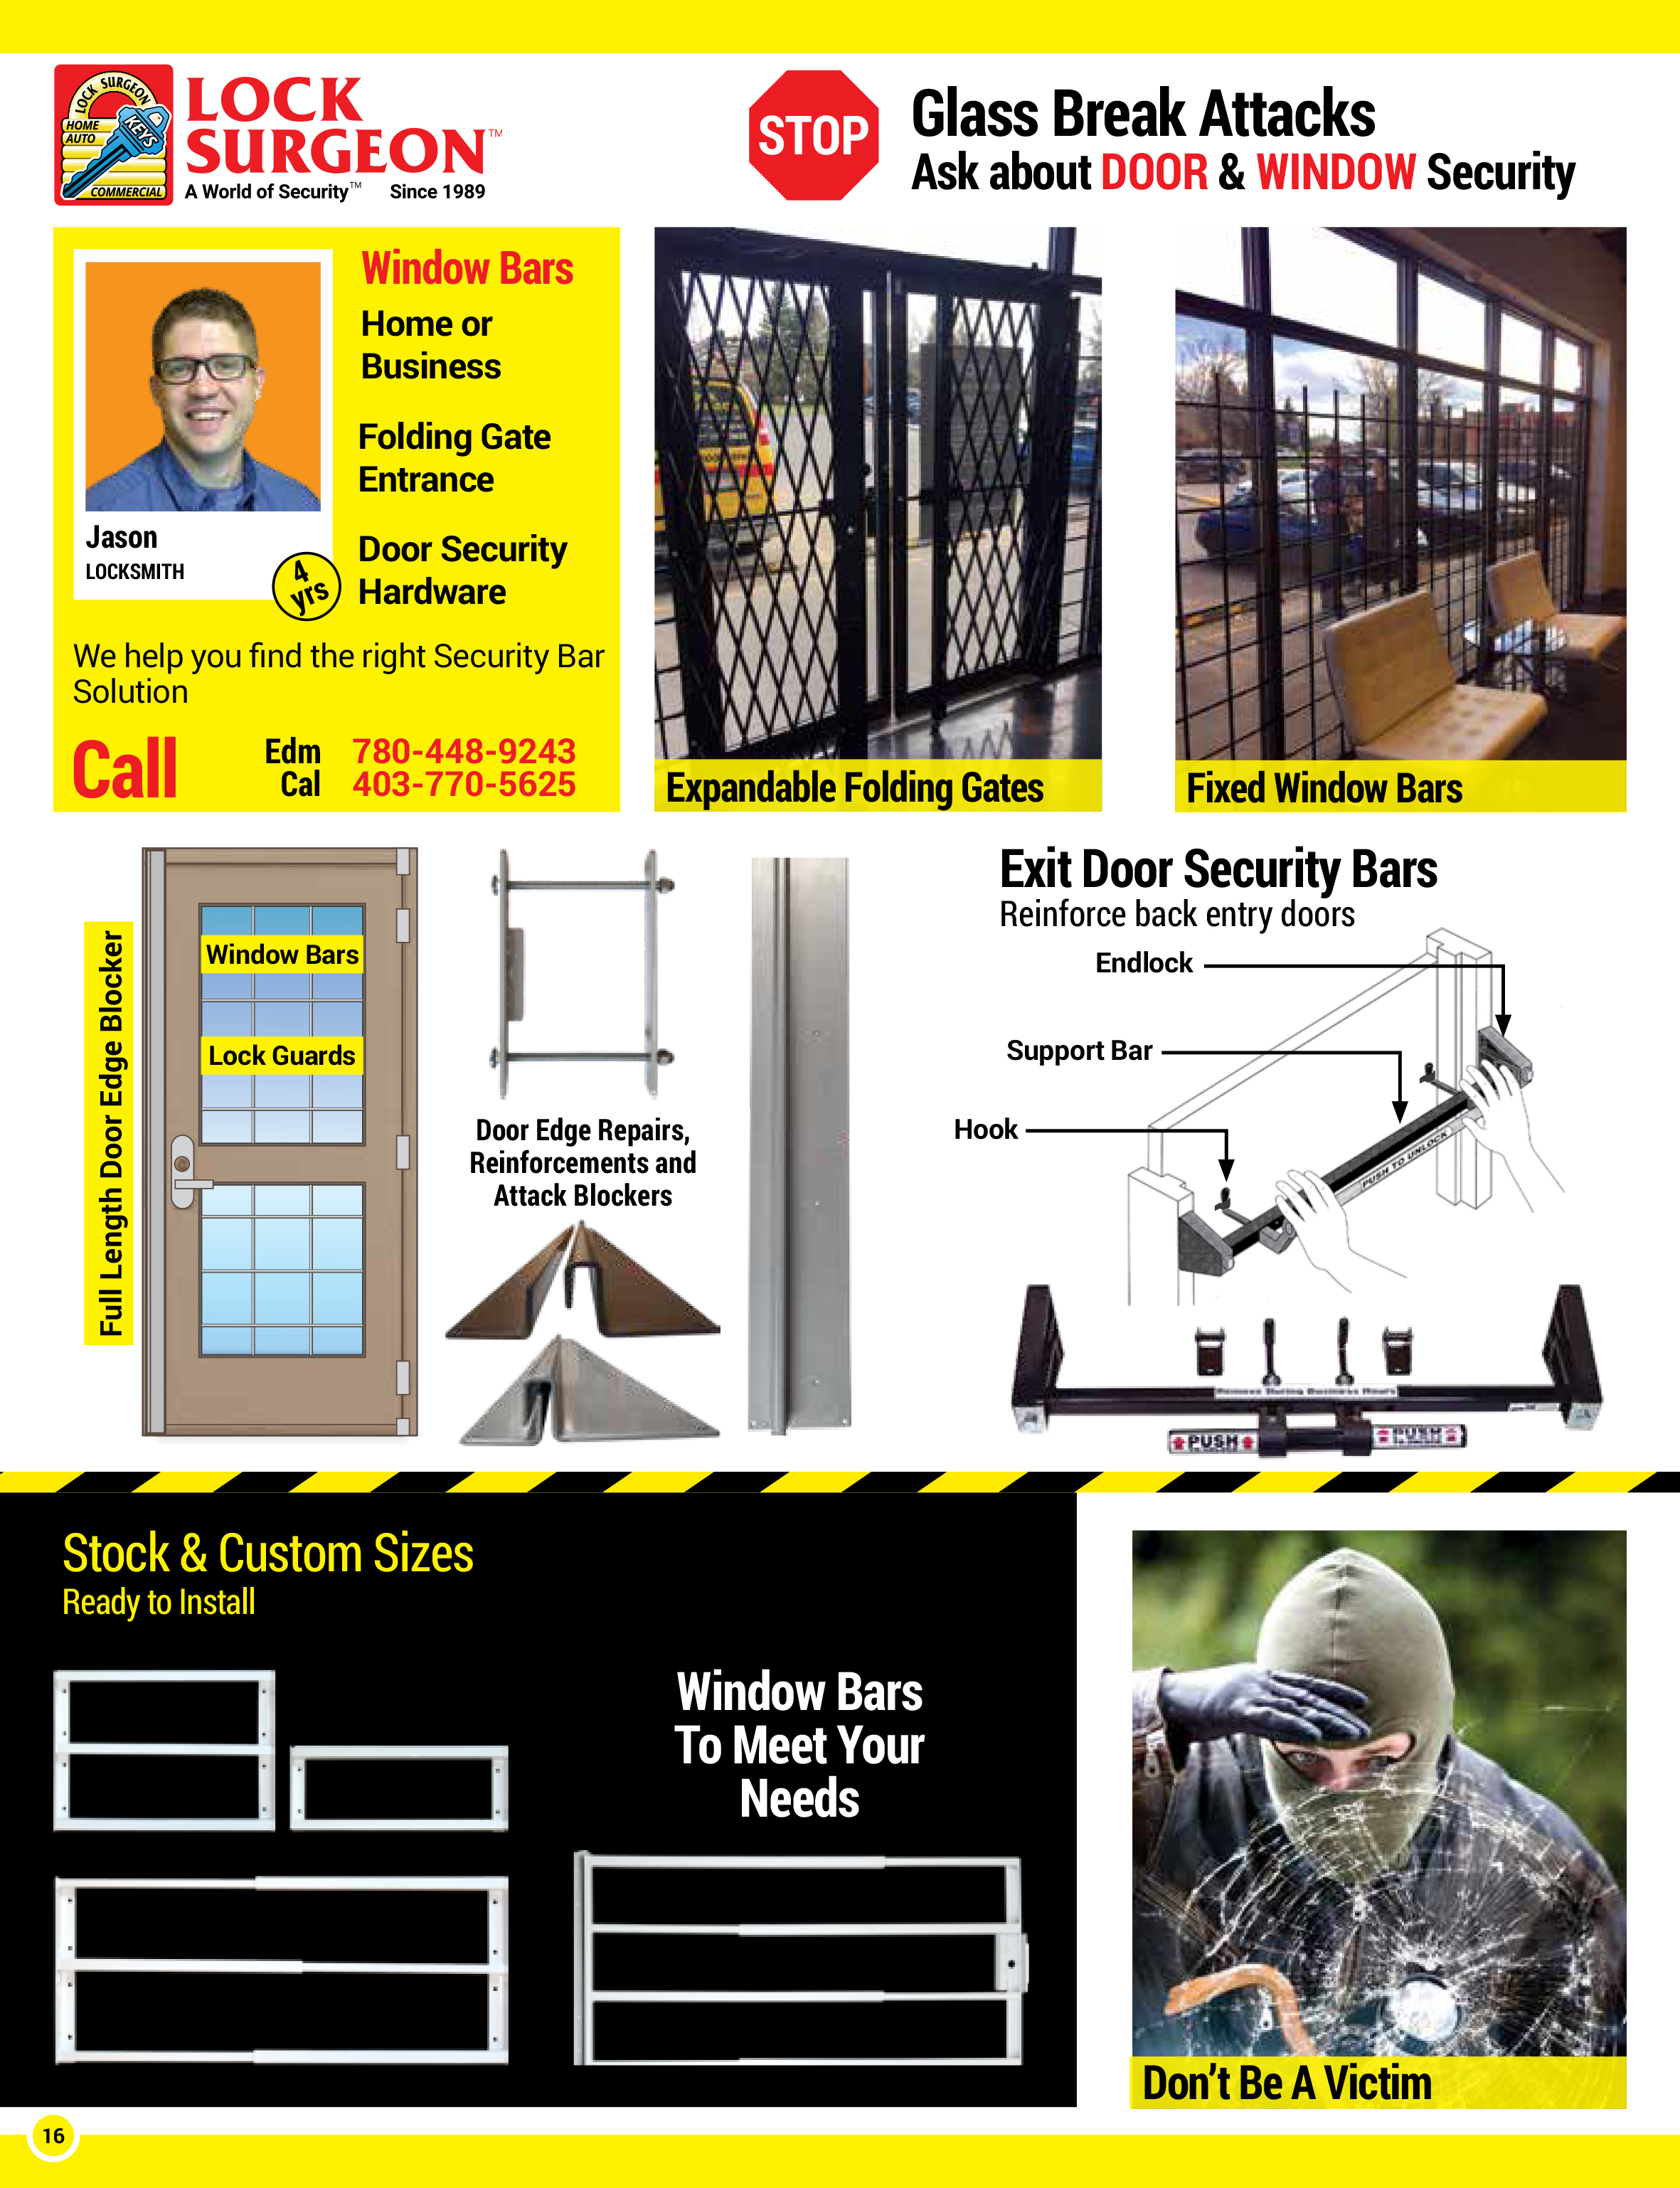 Door and window security bars, full edge door blockers, lock guards, door edge reinforcements, back entry barrier bars, stock and custom size window bars, folding gates, supplied and installed